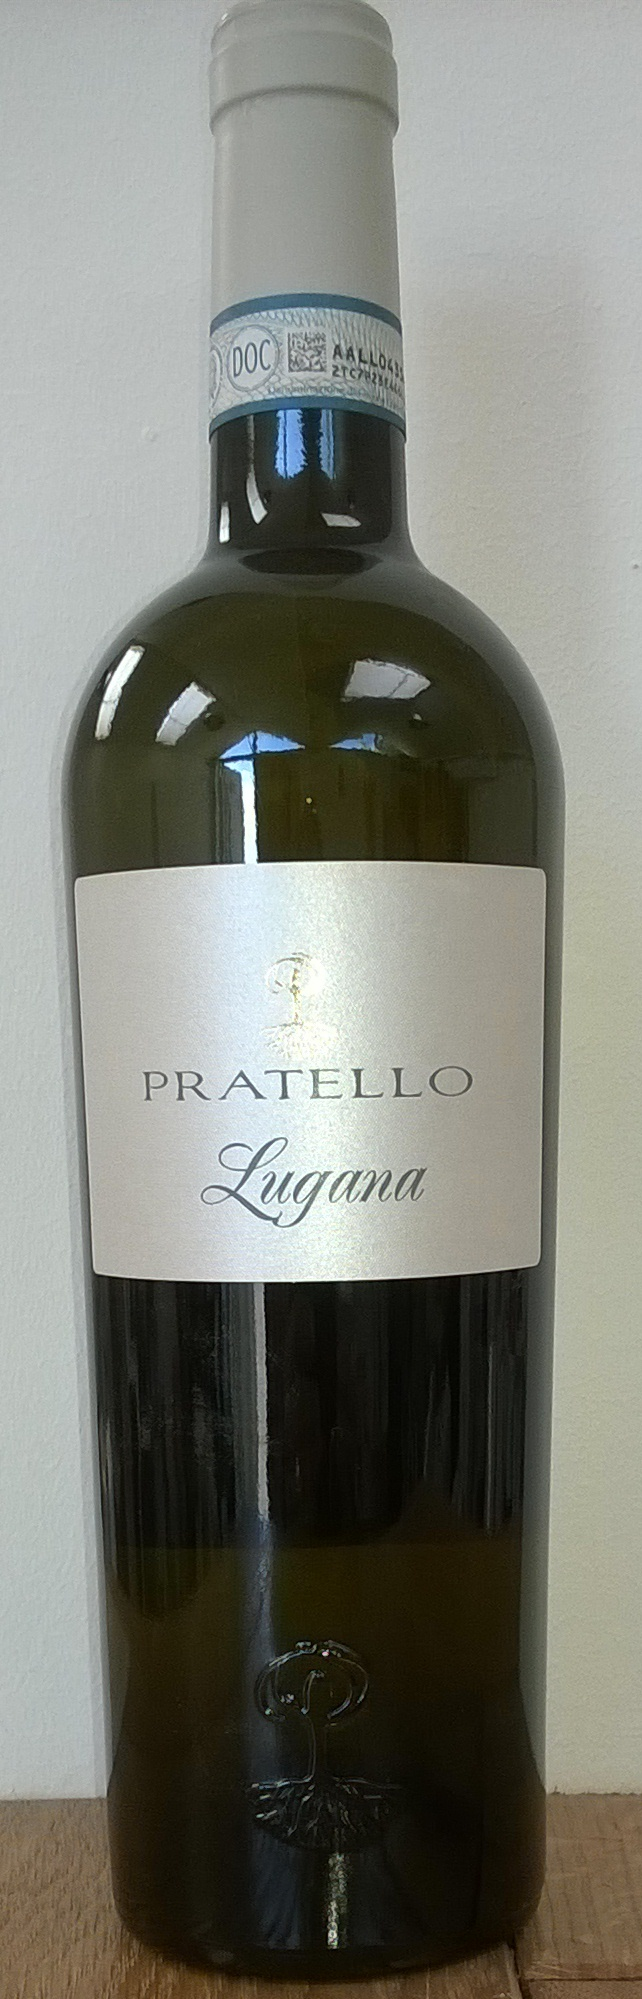 Pratello Catulliano Lugana 2016